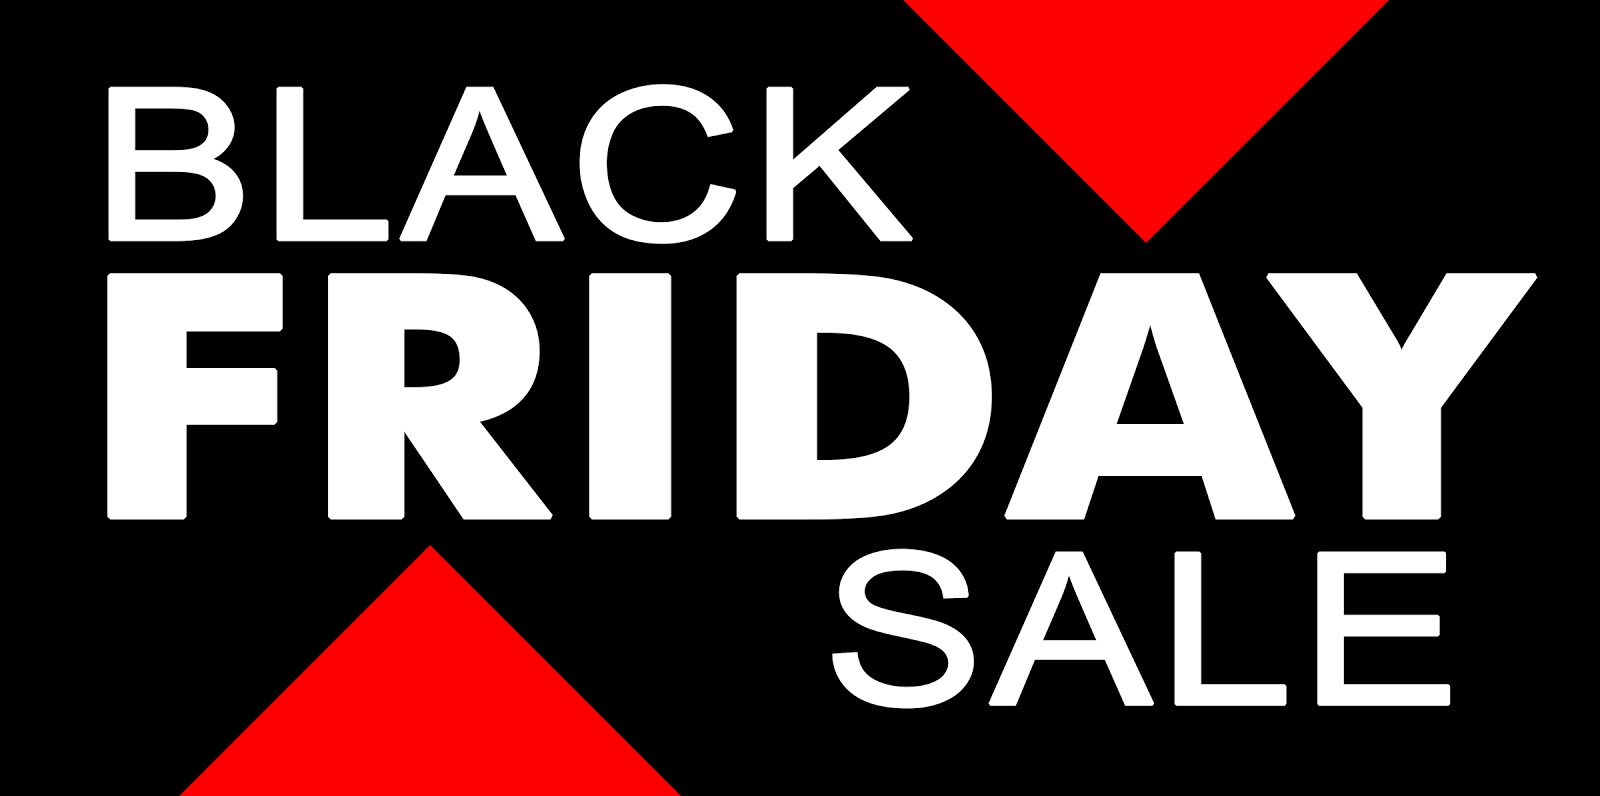 Black Frideay Banners Black Friday Banner Templates